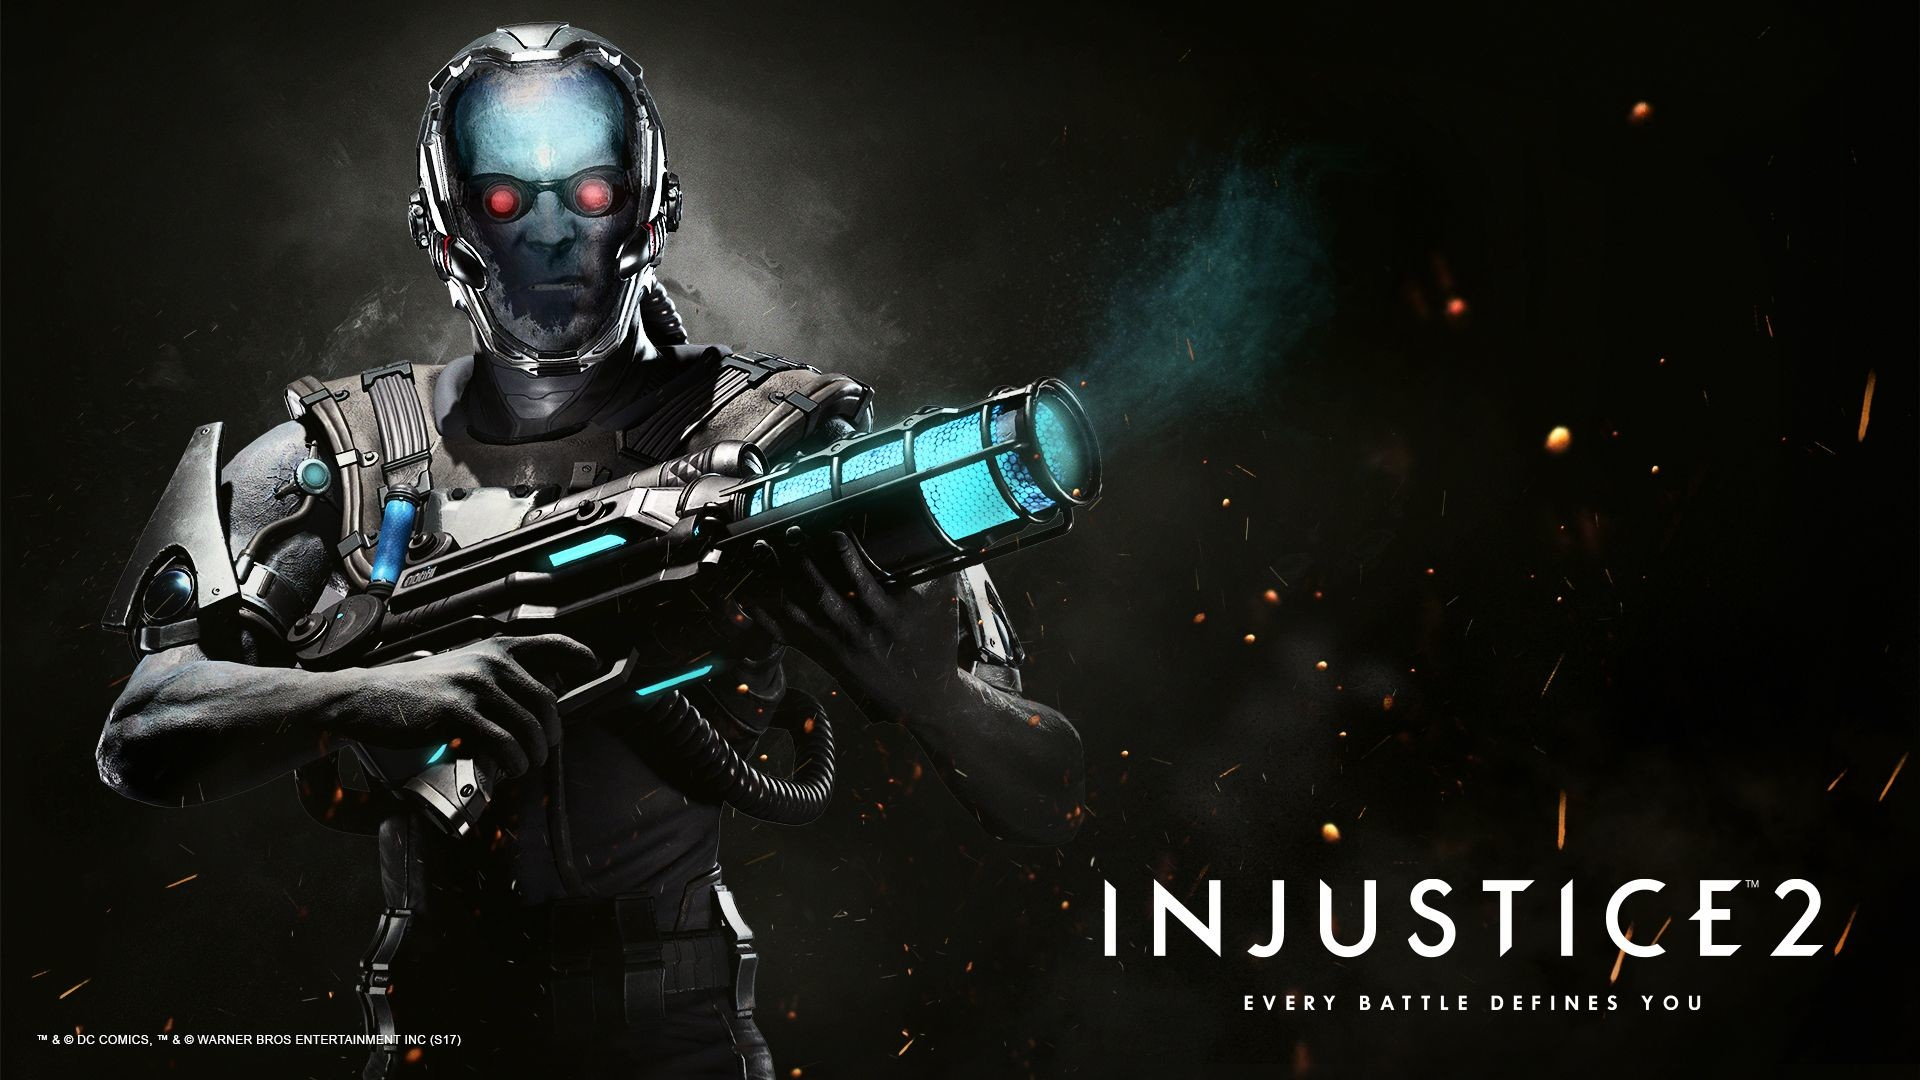 Injustice 2 Wallpapers (81+ images)